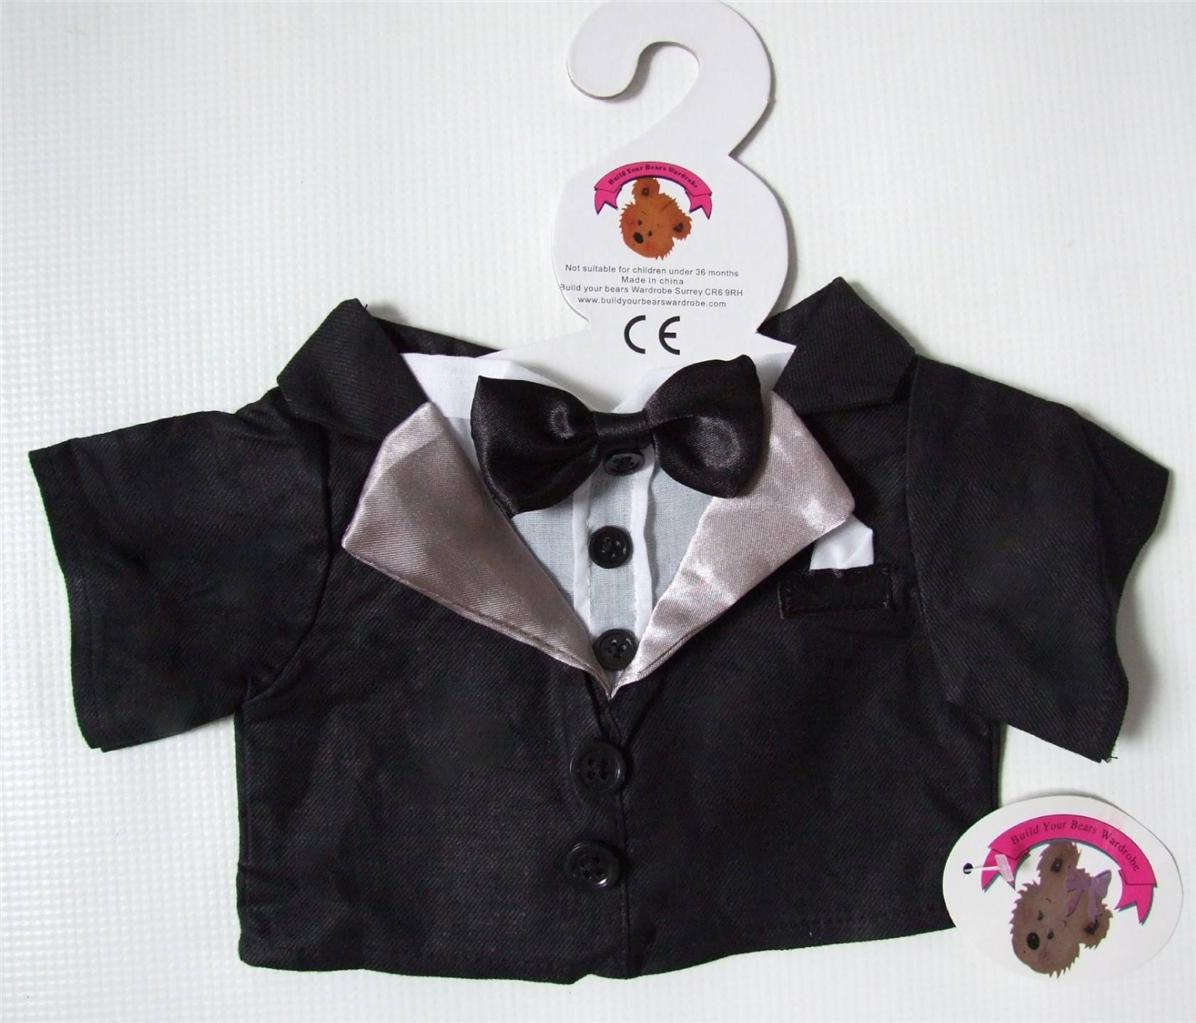 Build-Your-Bears-Wardrobe-Wedding-Groom-Tuxedo-15-16-in-Teddy-Bear-Clothes